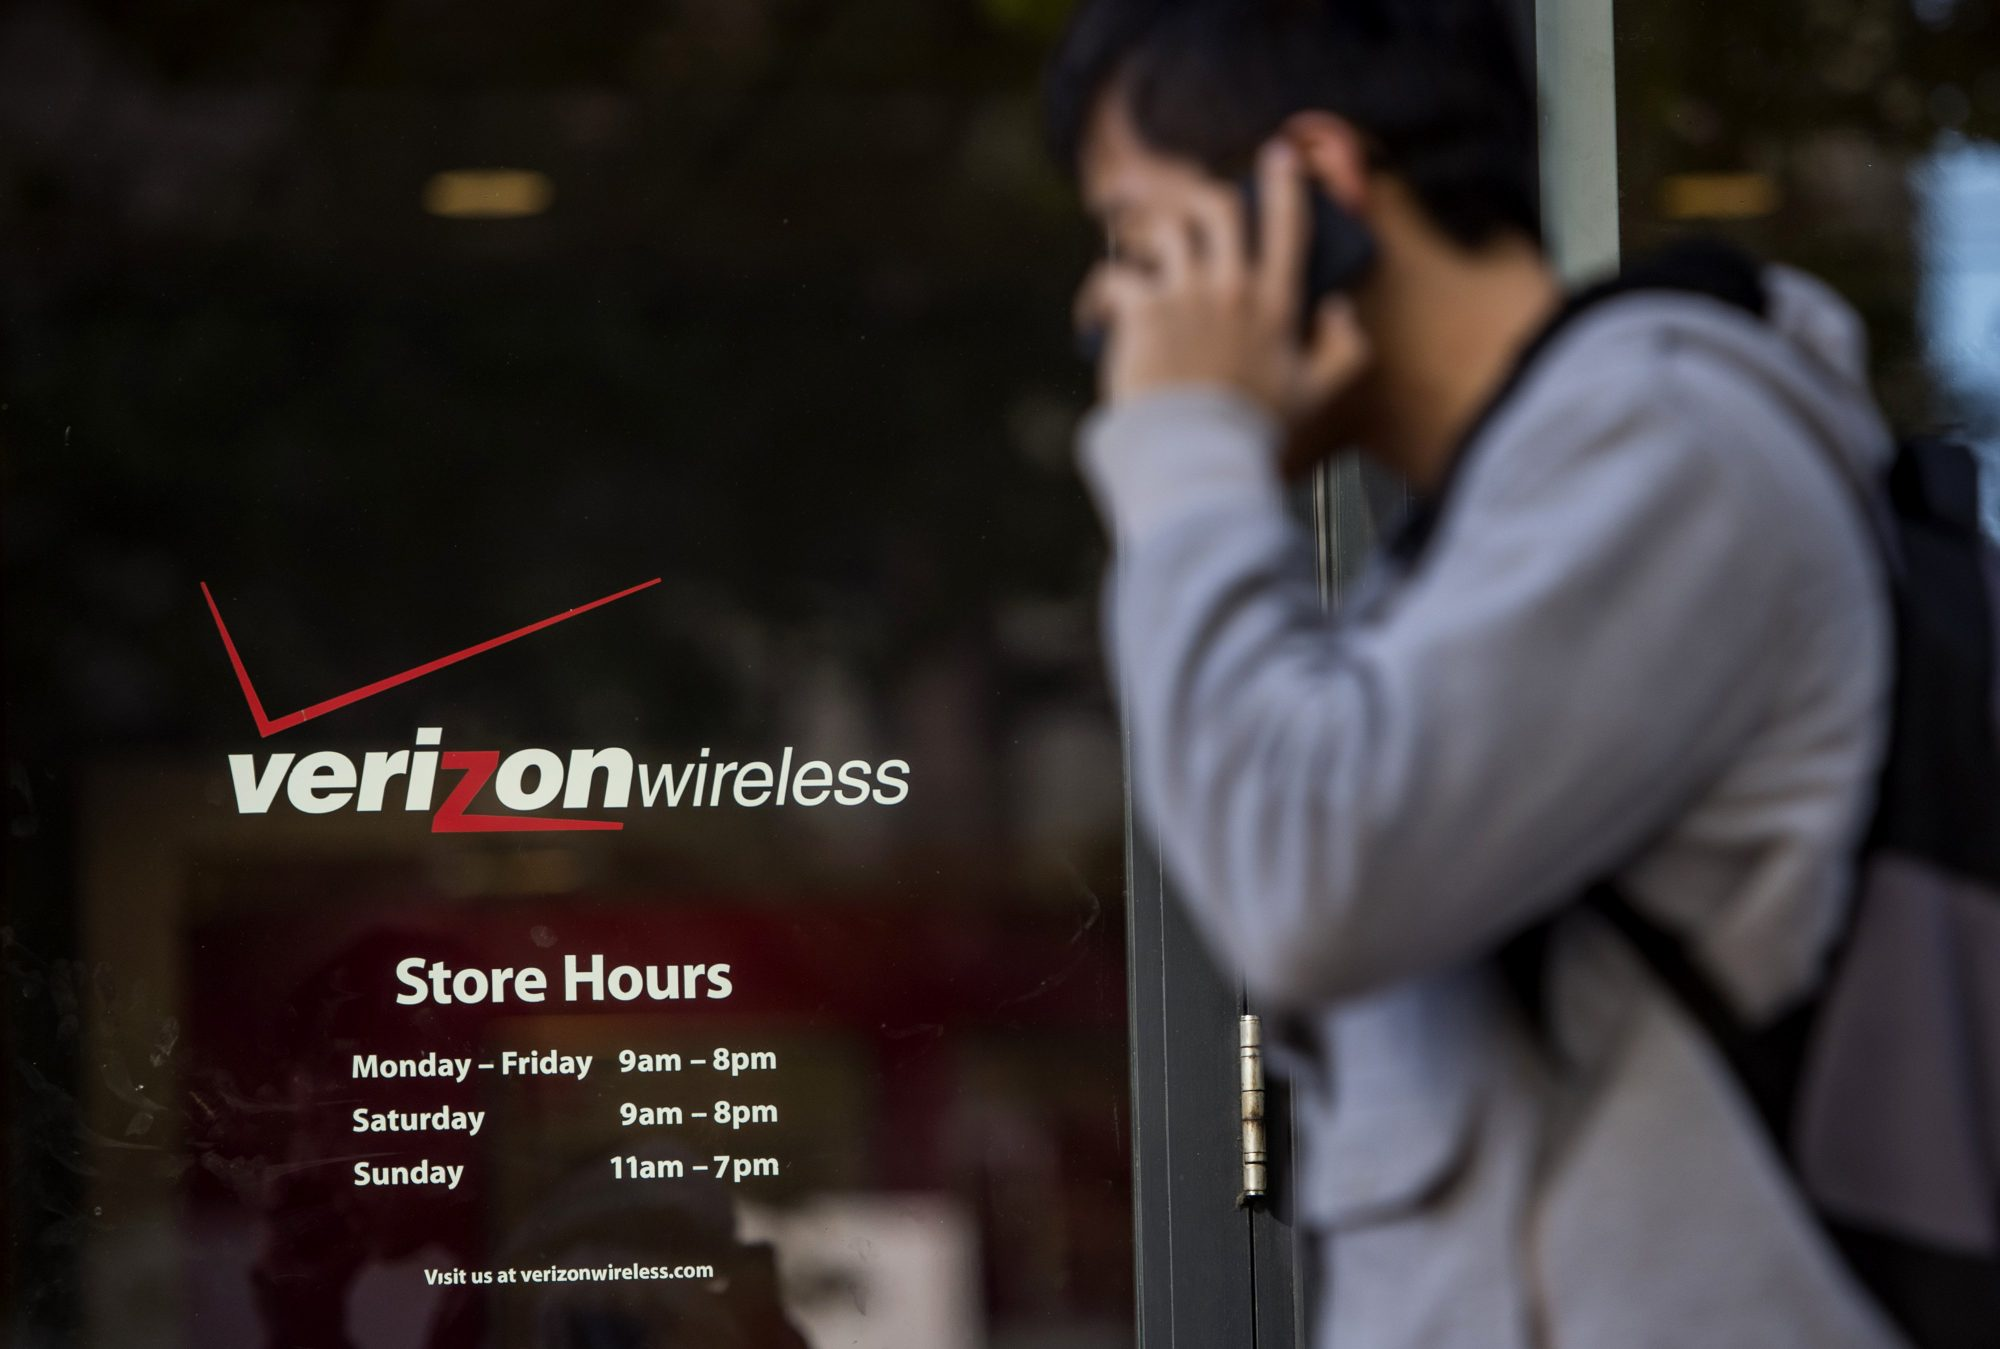 Verizon Is Kicking Out Customers Who Use Too Much Data